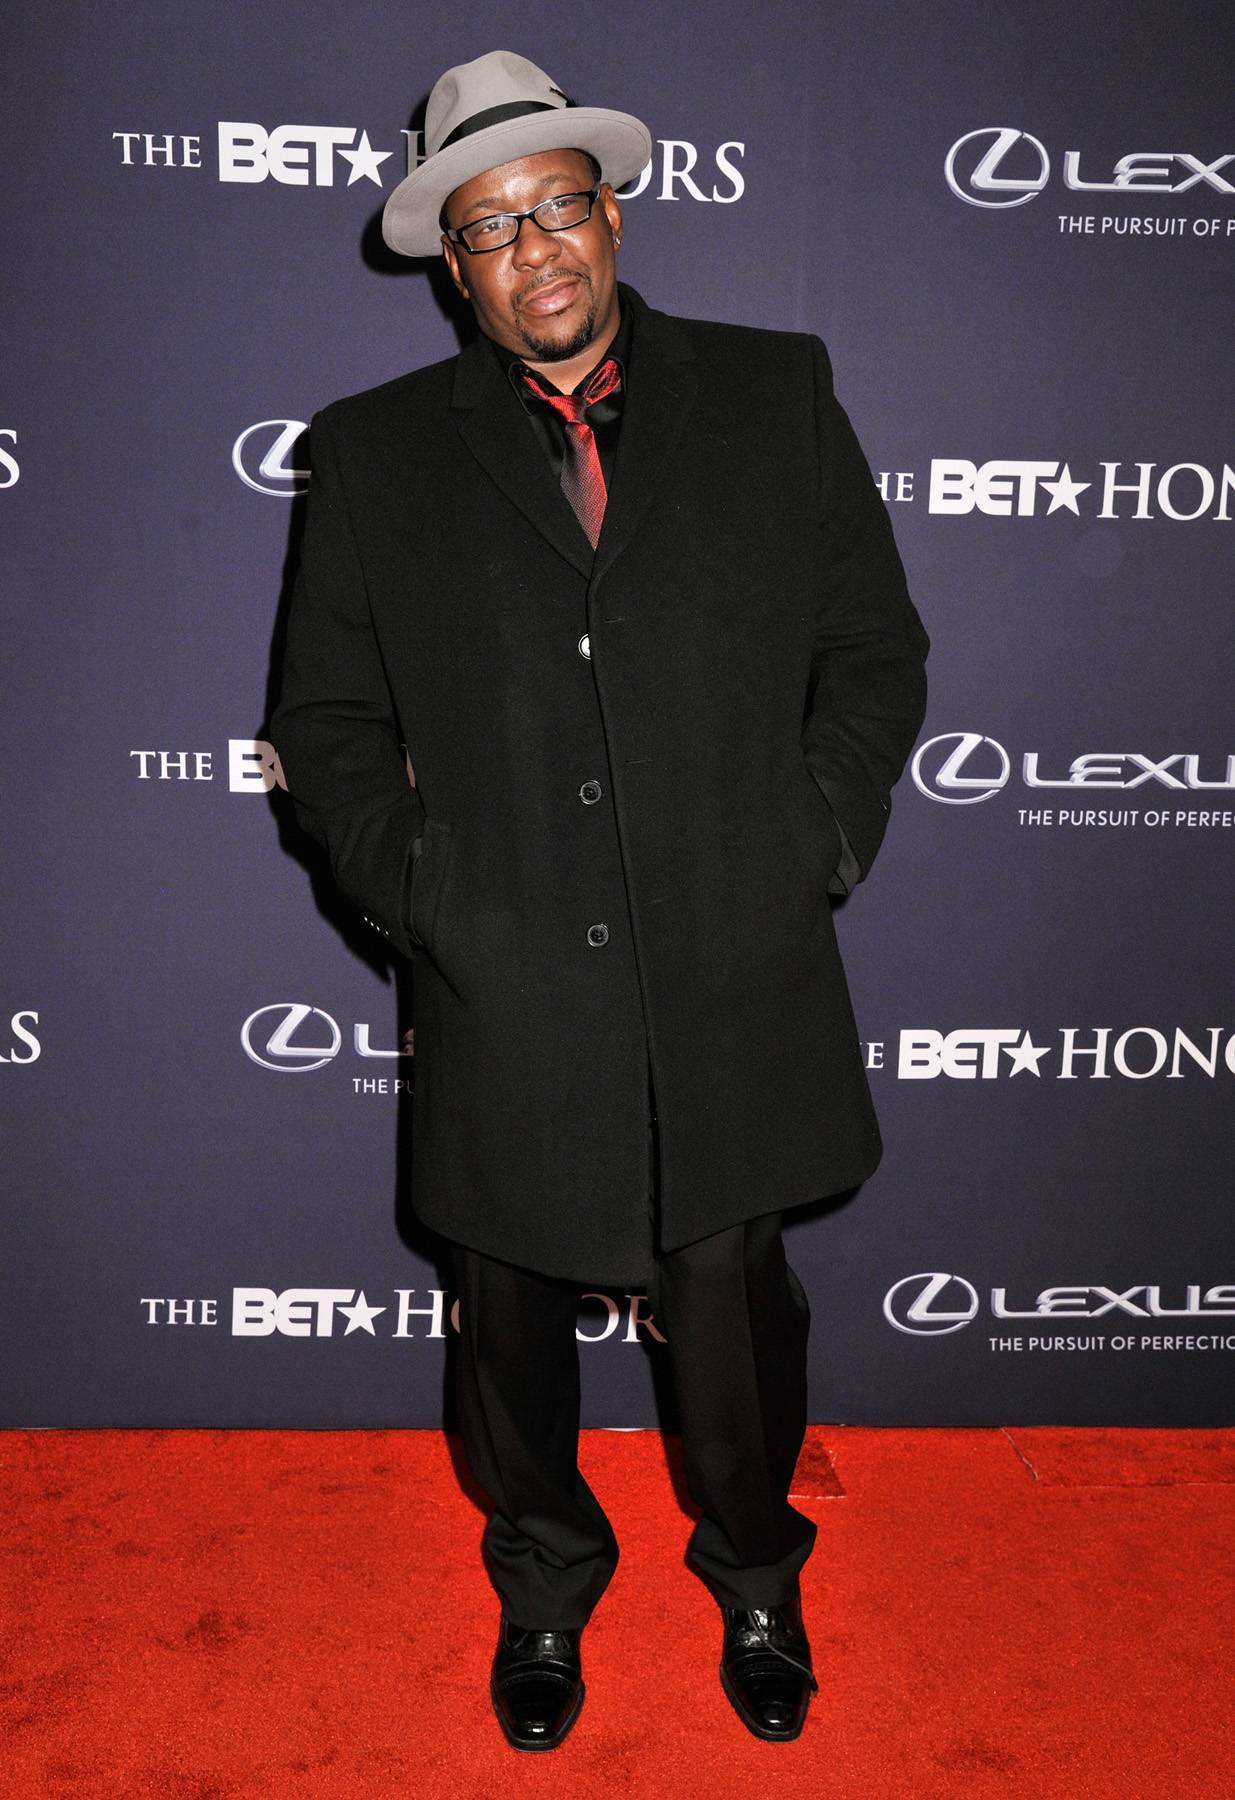 /content/dam/betcom/images/2015/01/Shows/BET-Honors/012415-shows-honors-red-carpet-bobby-brown-3.jpg